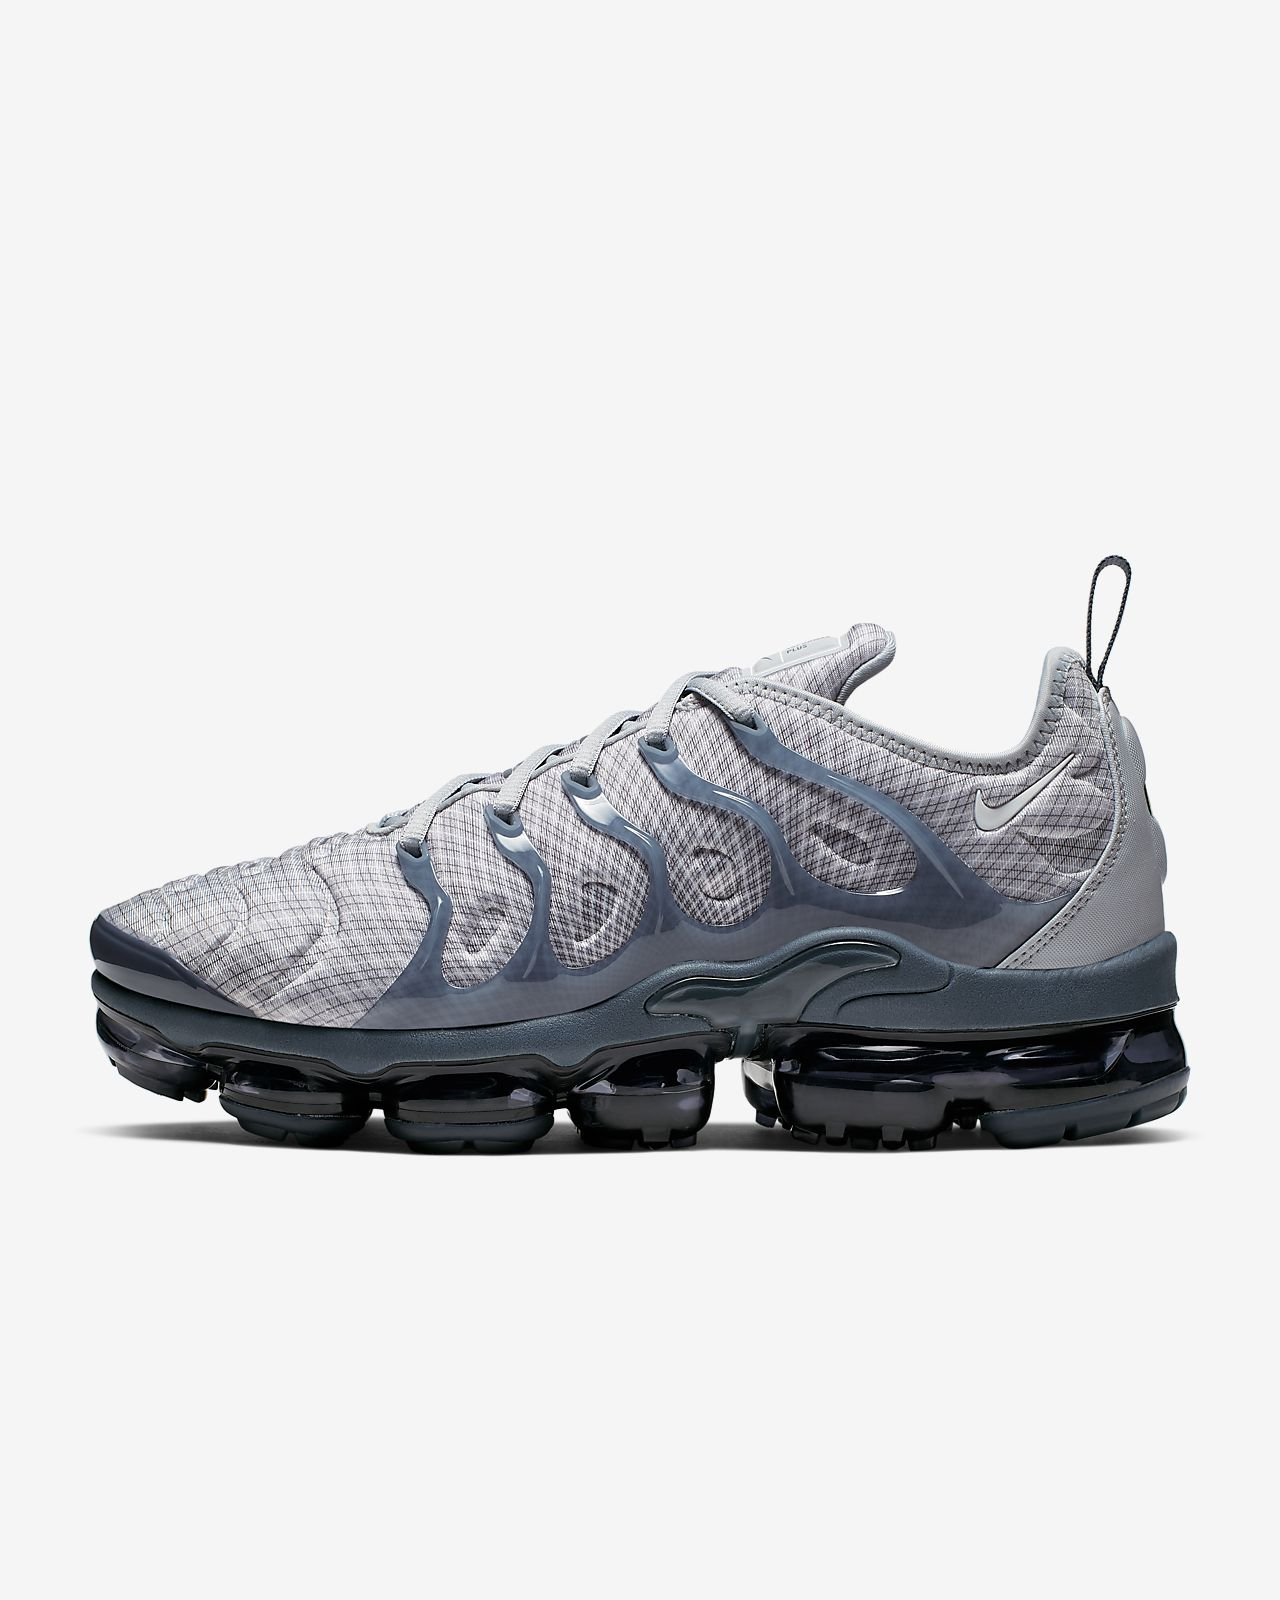 nike air max plus tn uomo 2019